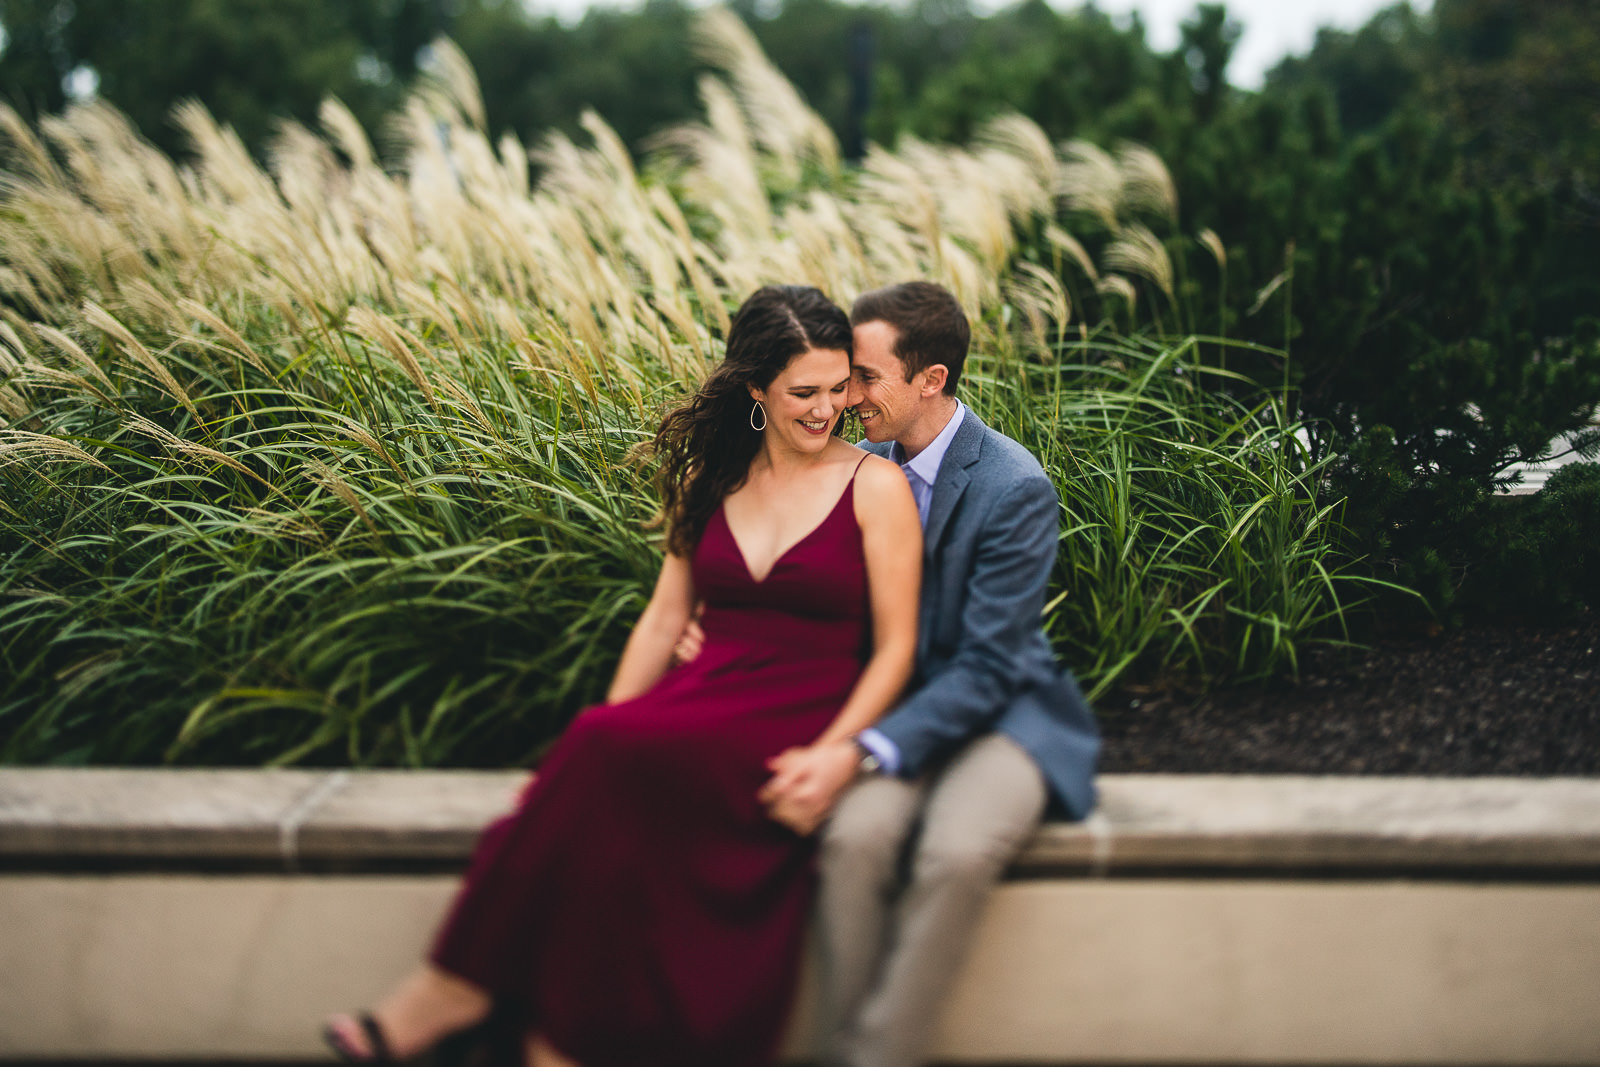 11 chicago engagement inspo - Chicago Engagement Photos // Colleen + Will